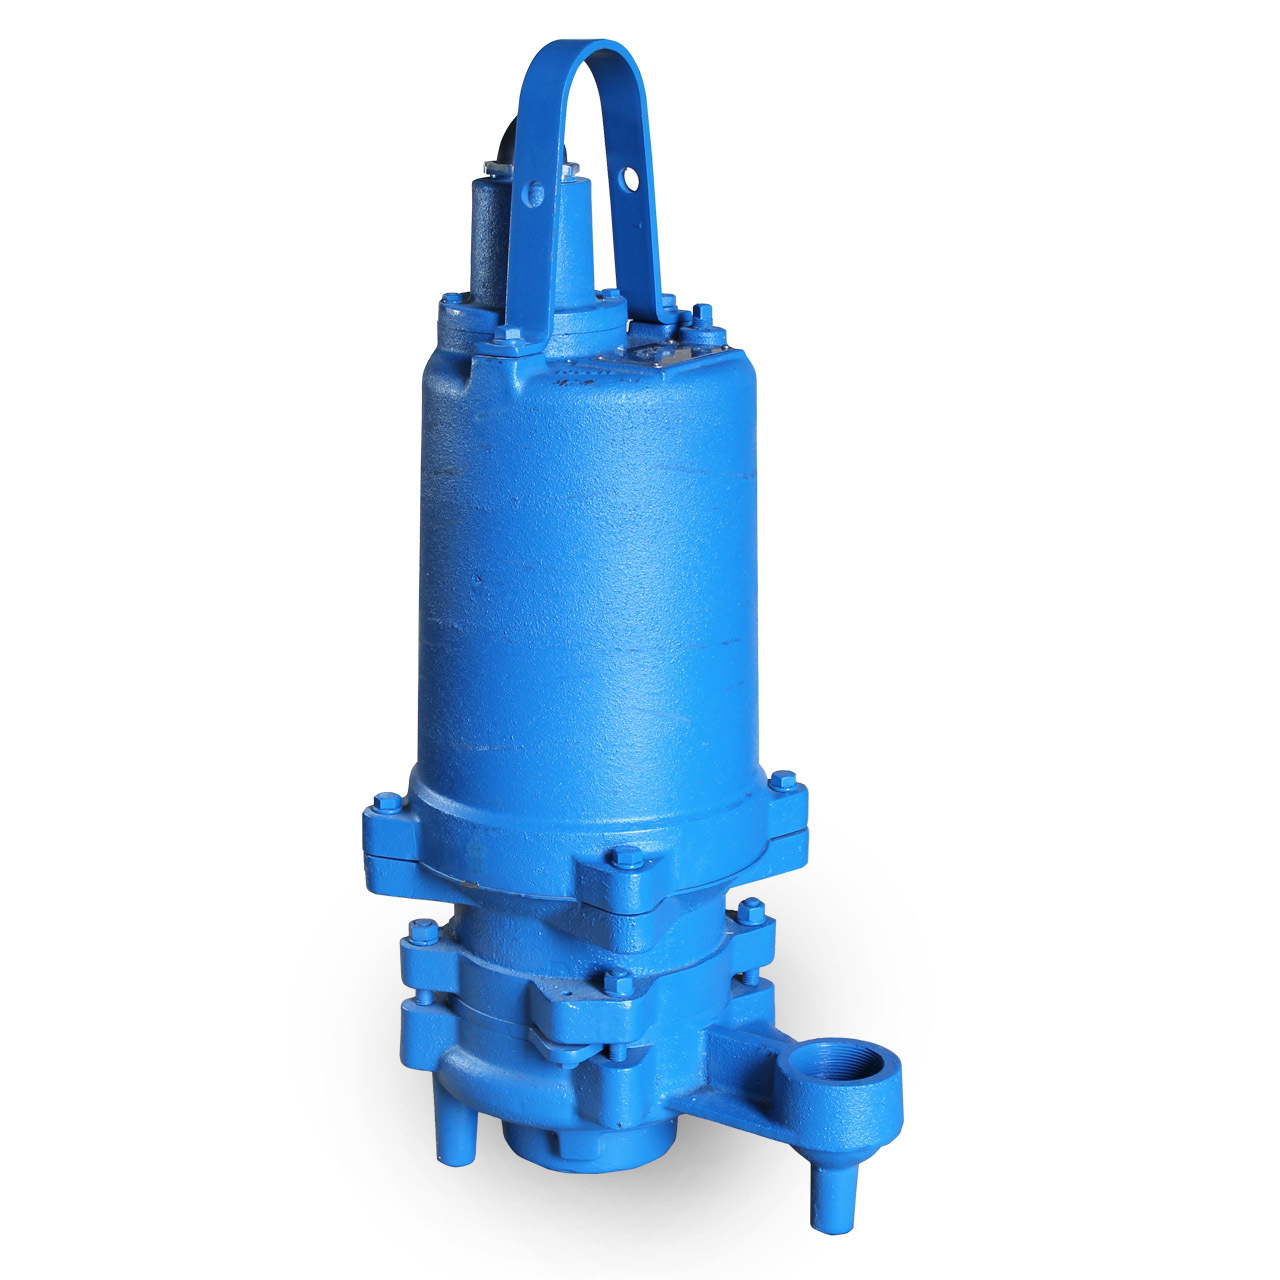 switch series barnes seal gpm vertical angle mechanical wide npt ft sewage se barns large pump sump automatic hp discharge with phase single model volts p max head cord float